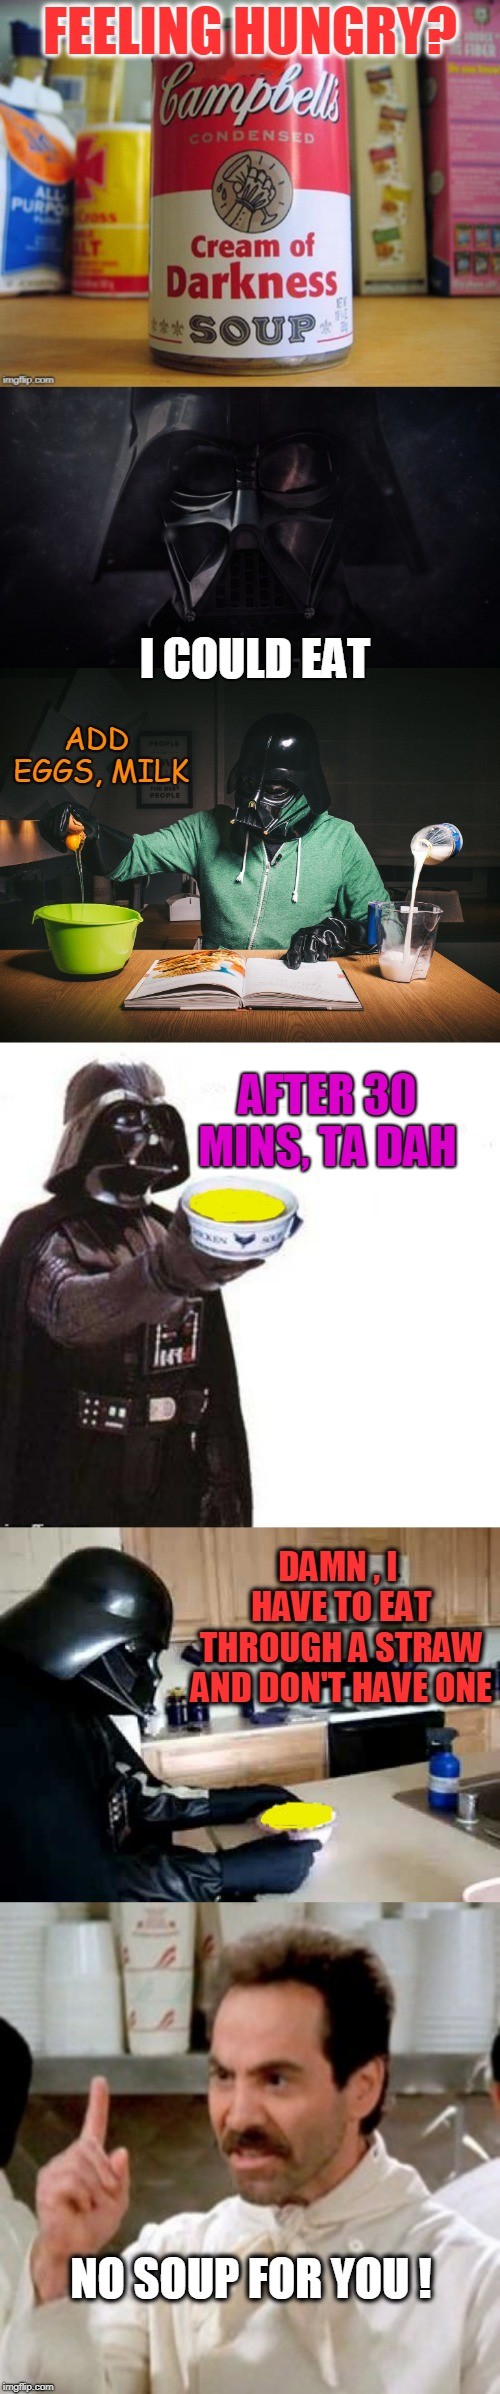 Hello cream of darkness my old friend  | FEELING HUNGRY? NO SOUP FOR YOU ! DAMN , I HAVE TO EAT THROUGH A STRAW AND DON'T HAVE ONE ADD EGGS, MILK I COULD EAT AFTER 30 MINS, TA DAH | image tagged in no soup for you,darth vader,cooking,soup,simon and garfunkel | made w/ Imgflip meme maker